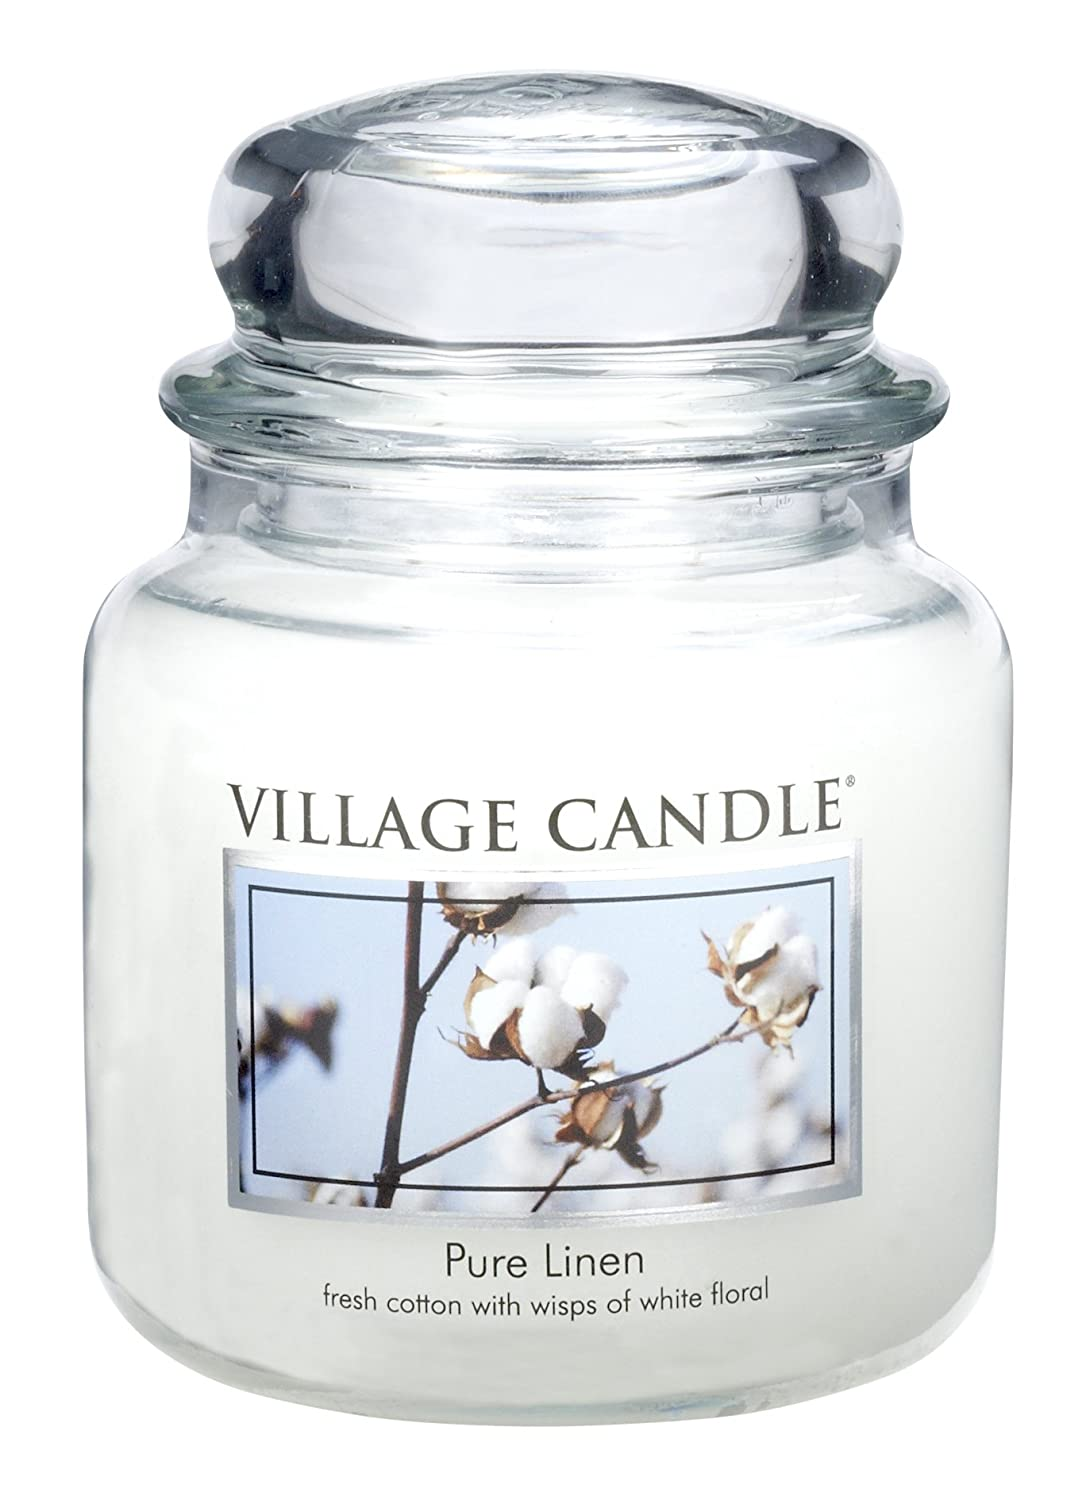 Village Candle Pure Linen 11 oz Glass Jar Scented Candle, Small 106011339